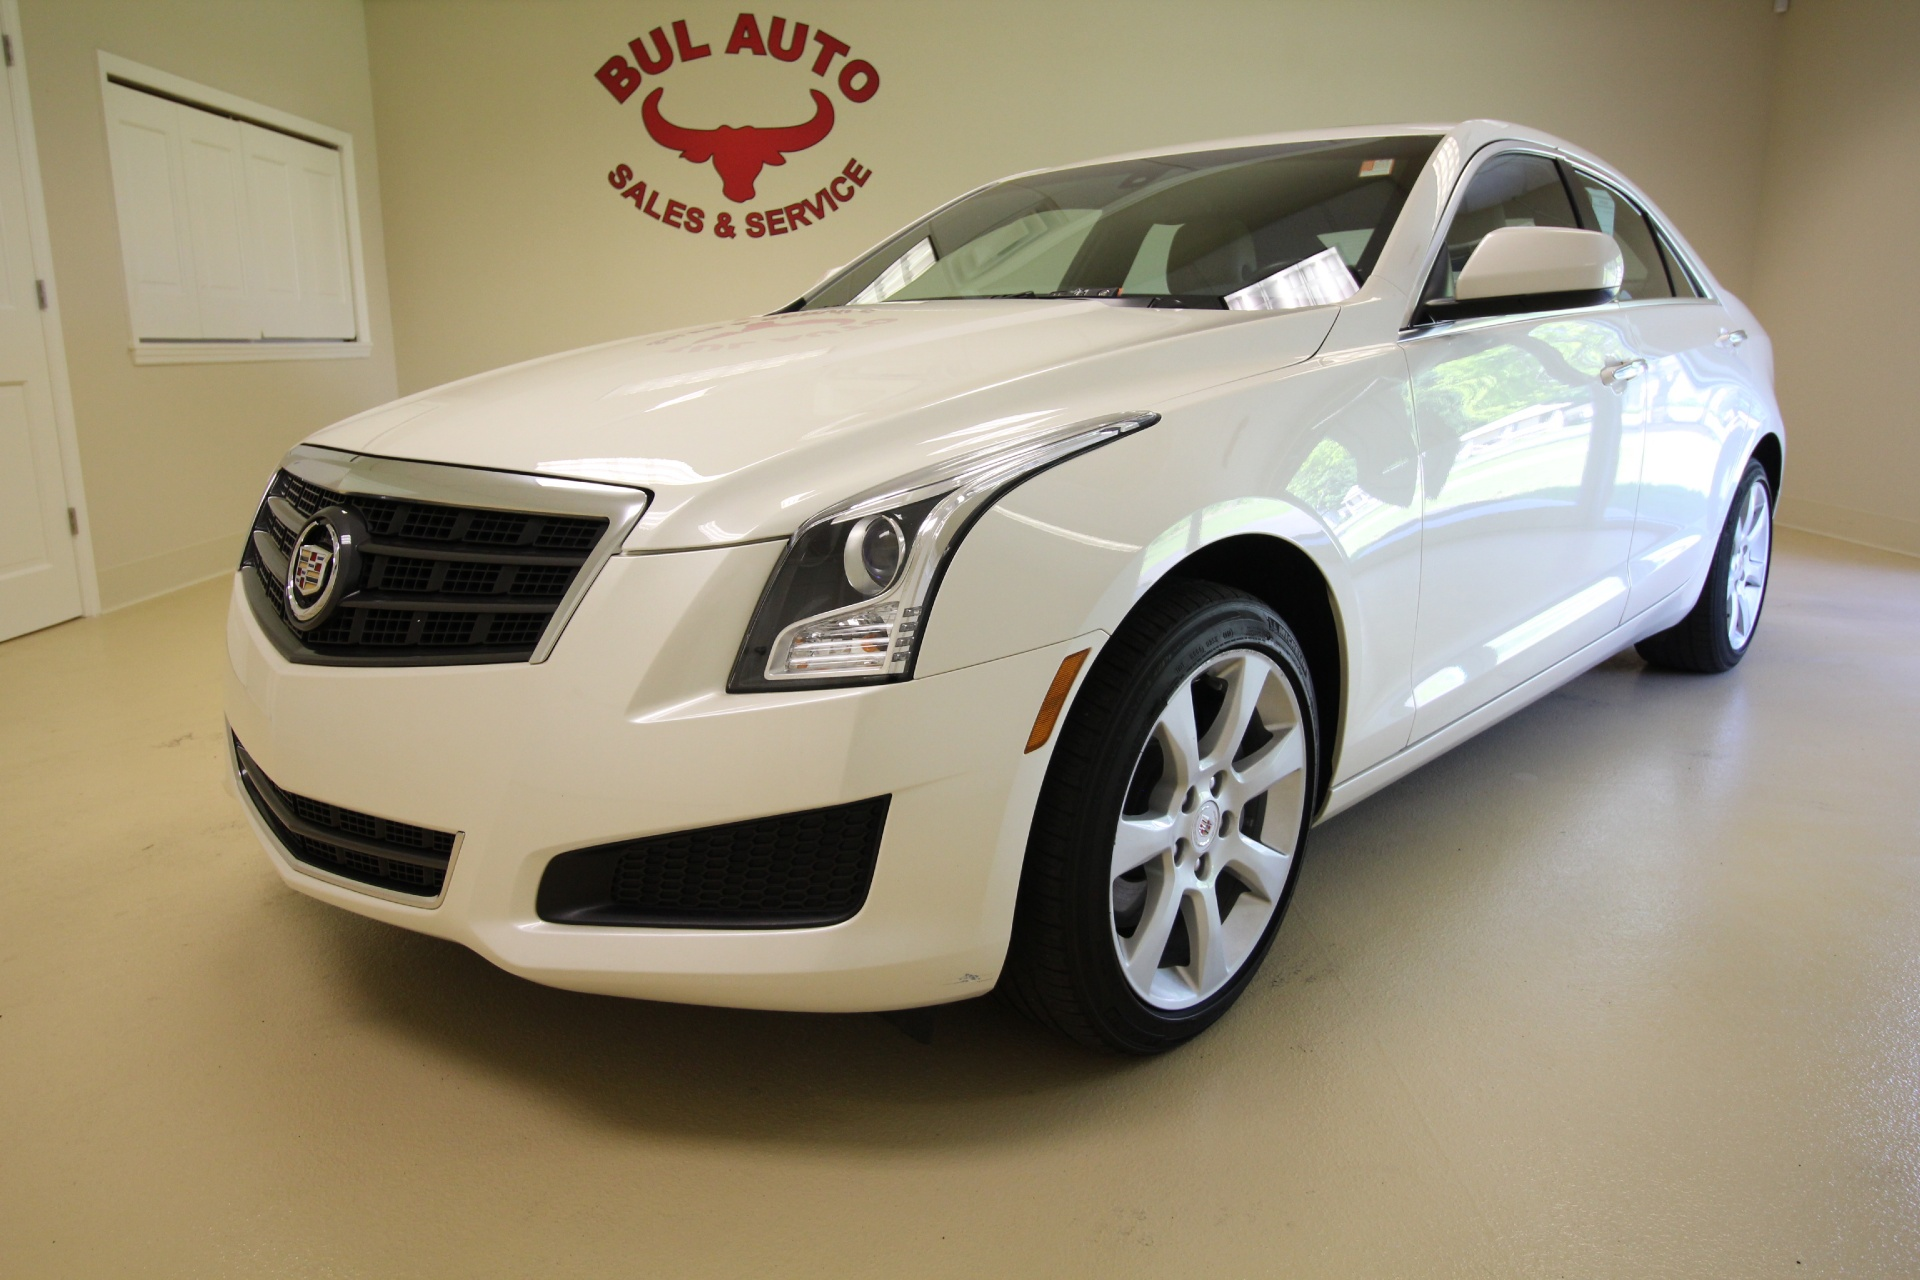 2013 cadillac ats 2 0t awd very clean low miles sunroof leather and more stock 16118 for sale. Black Bedroom Furniture Sets. Home Design Ideas